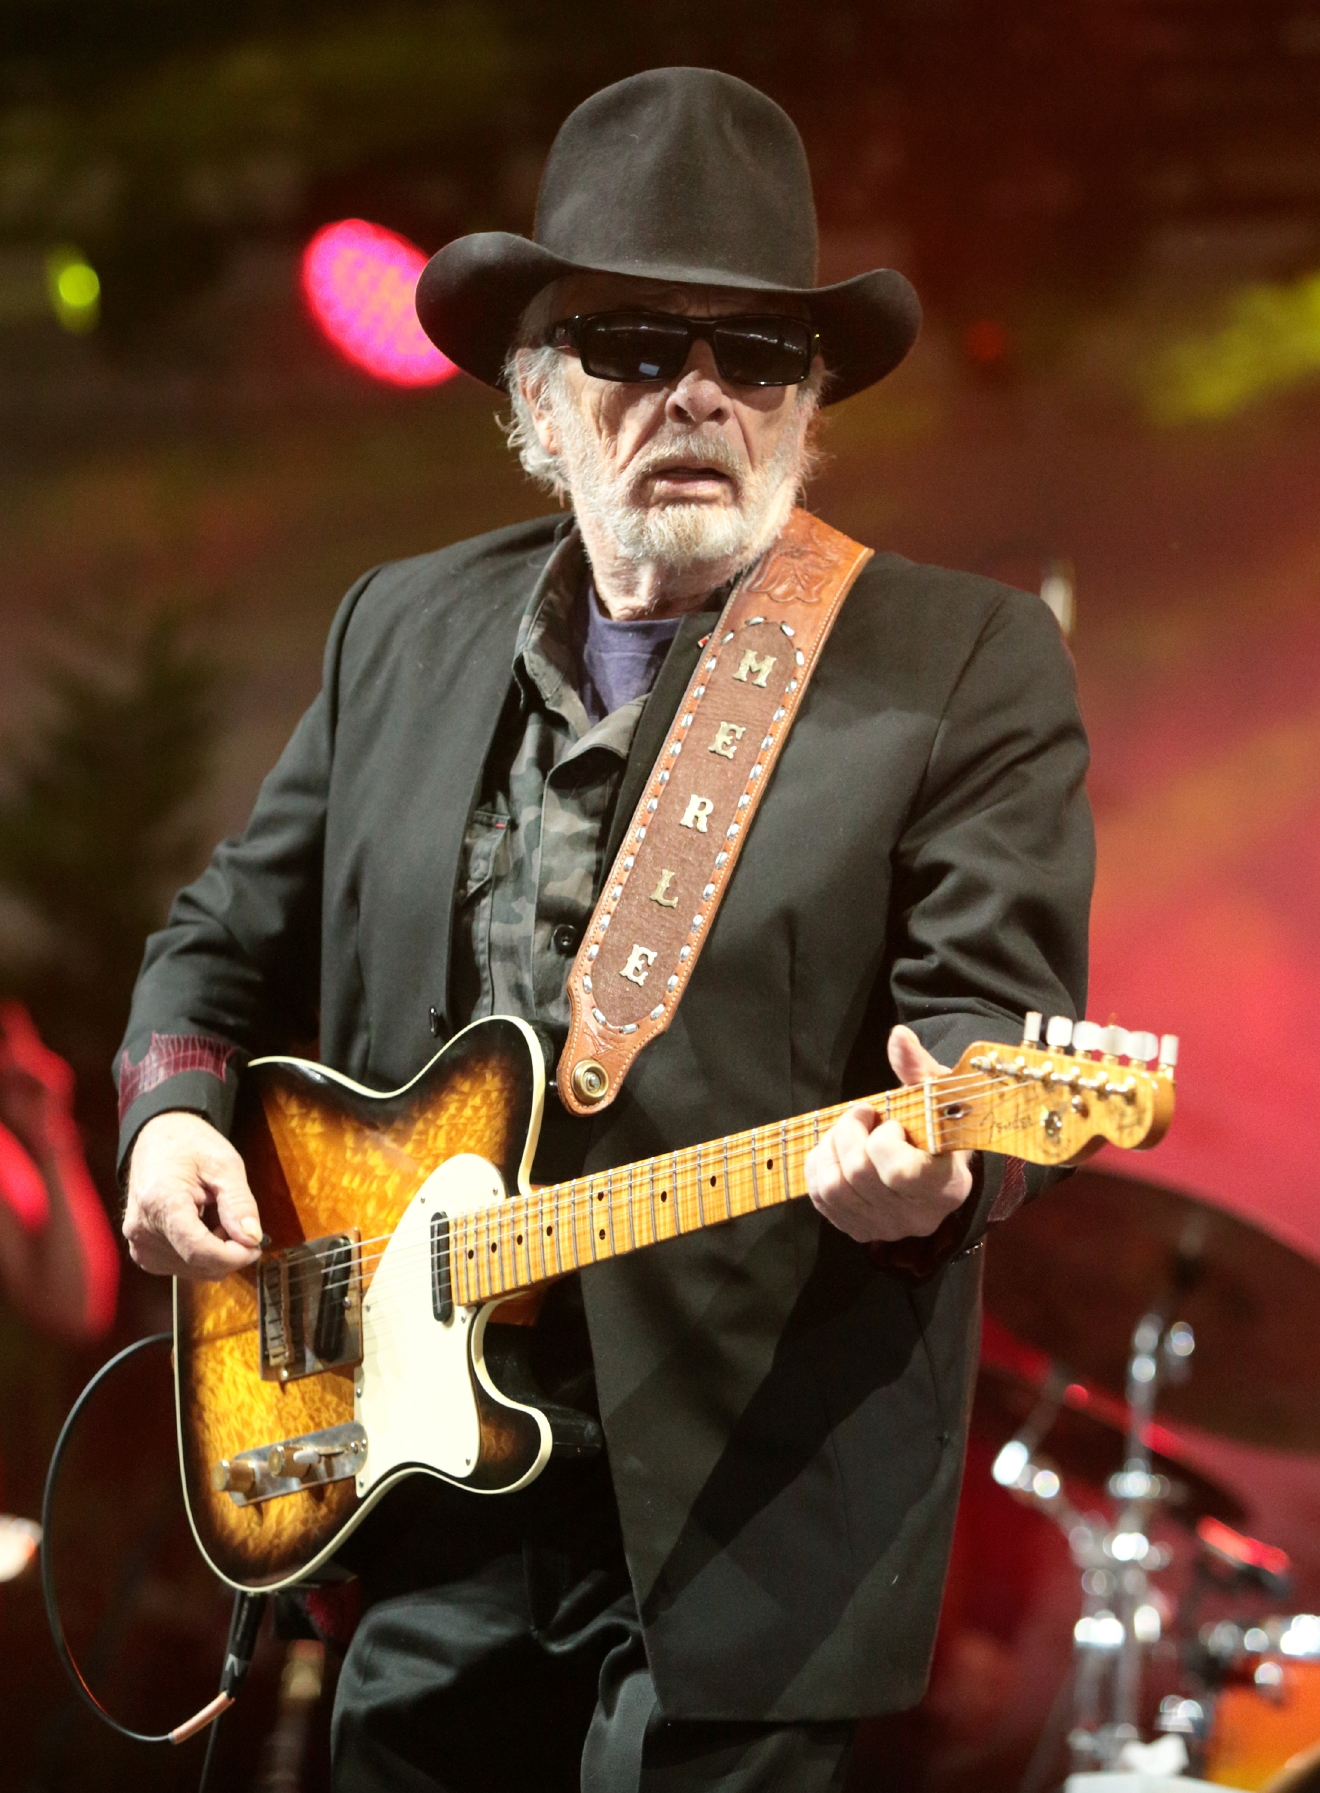 FILE - In this June 28, 2015 file photo, Merle Haggard performs on Day 3 of the 2015 Big Barrel Country Music Festival at The Woodlands on Sunday, June 28, 2015, in Dover, Del. Haggard died of pneumonia, Wednesday, April 6, 2016, in Palo Cedro, Calif. He was 79. (Photo by Owen Sweeney/Invision/AP)